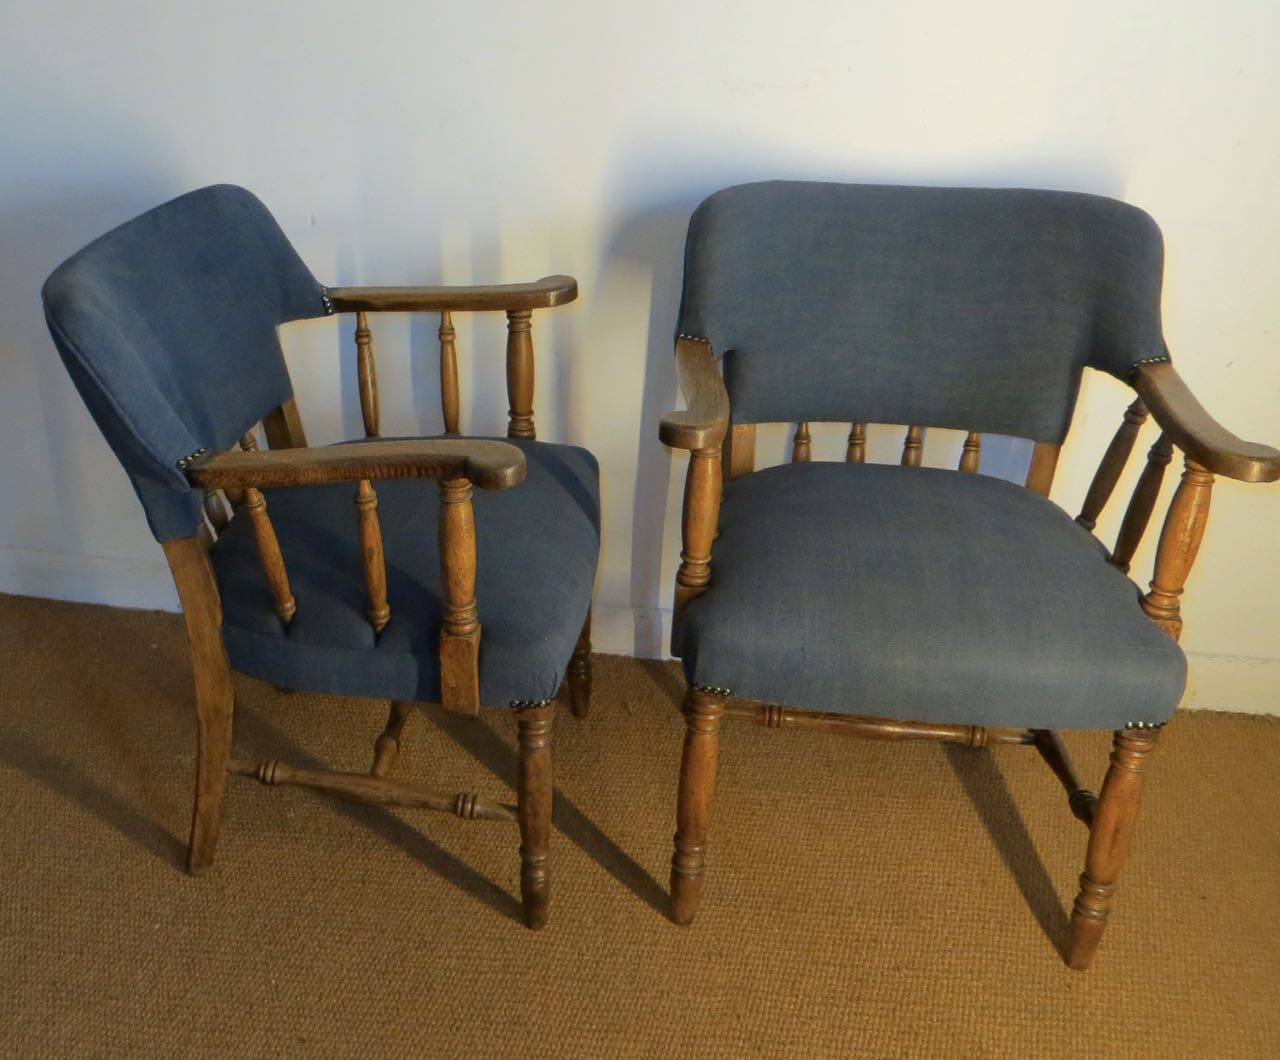 Picture of Pair of 1930s Oak chairs